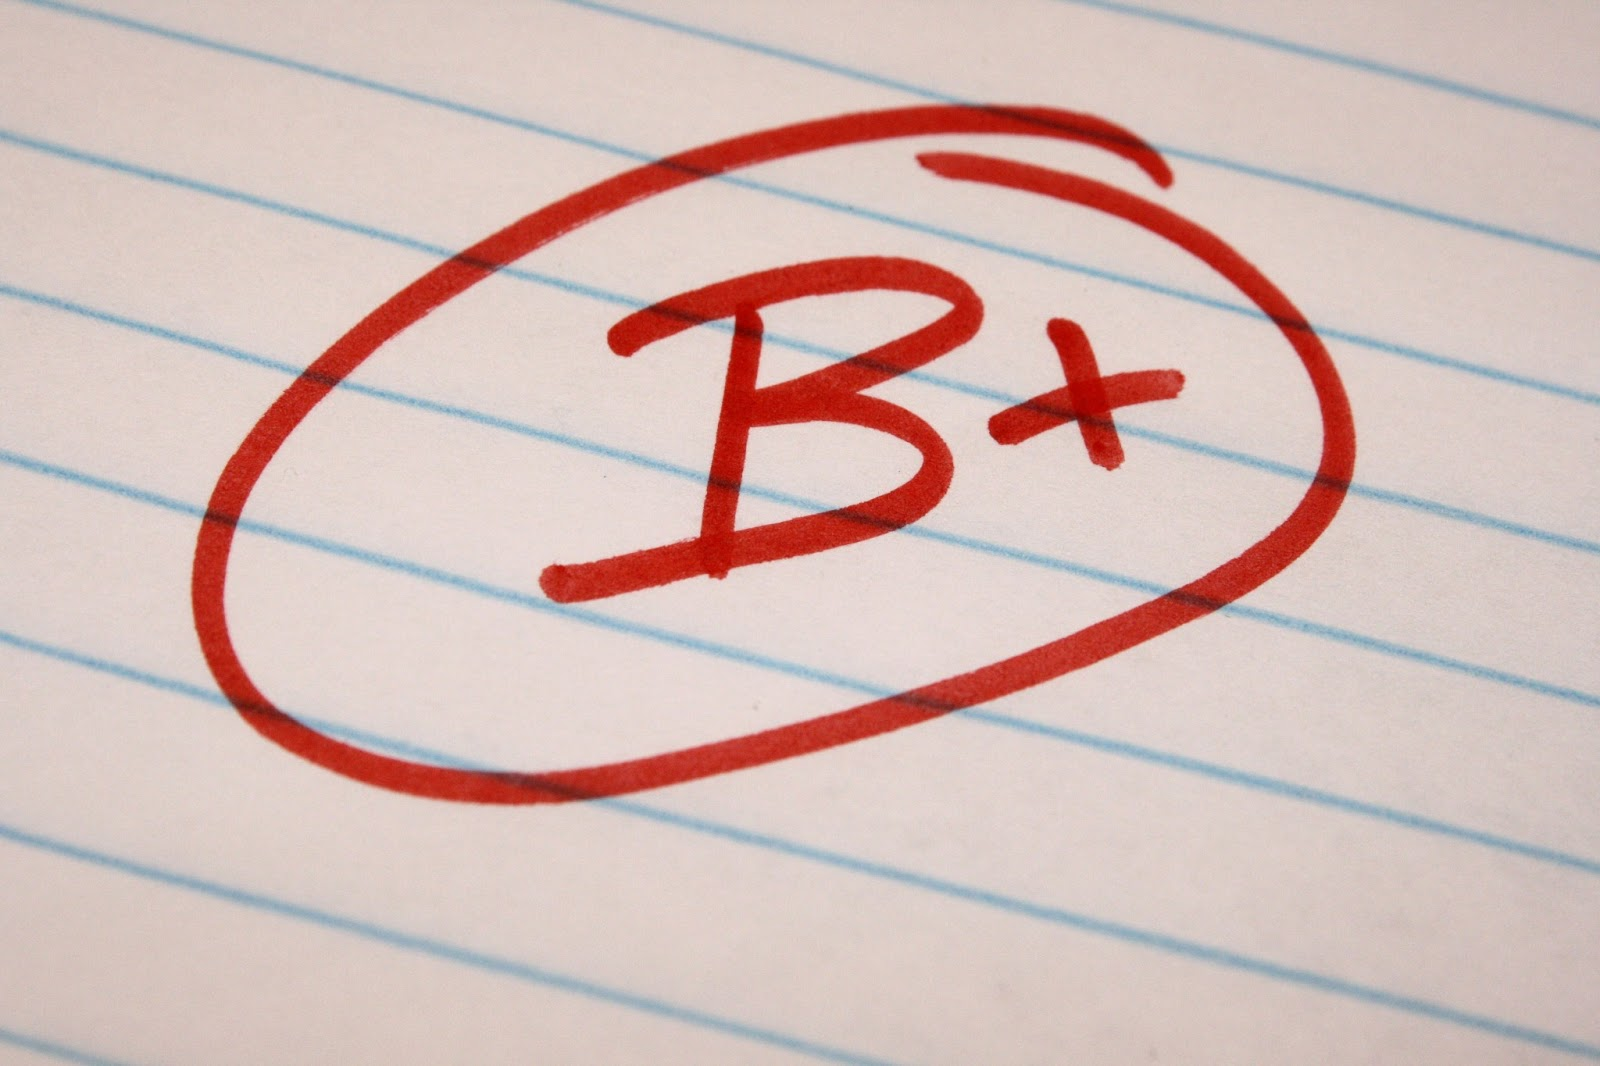 Grading school papers online - Writing Service Help To